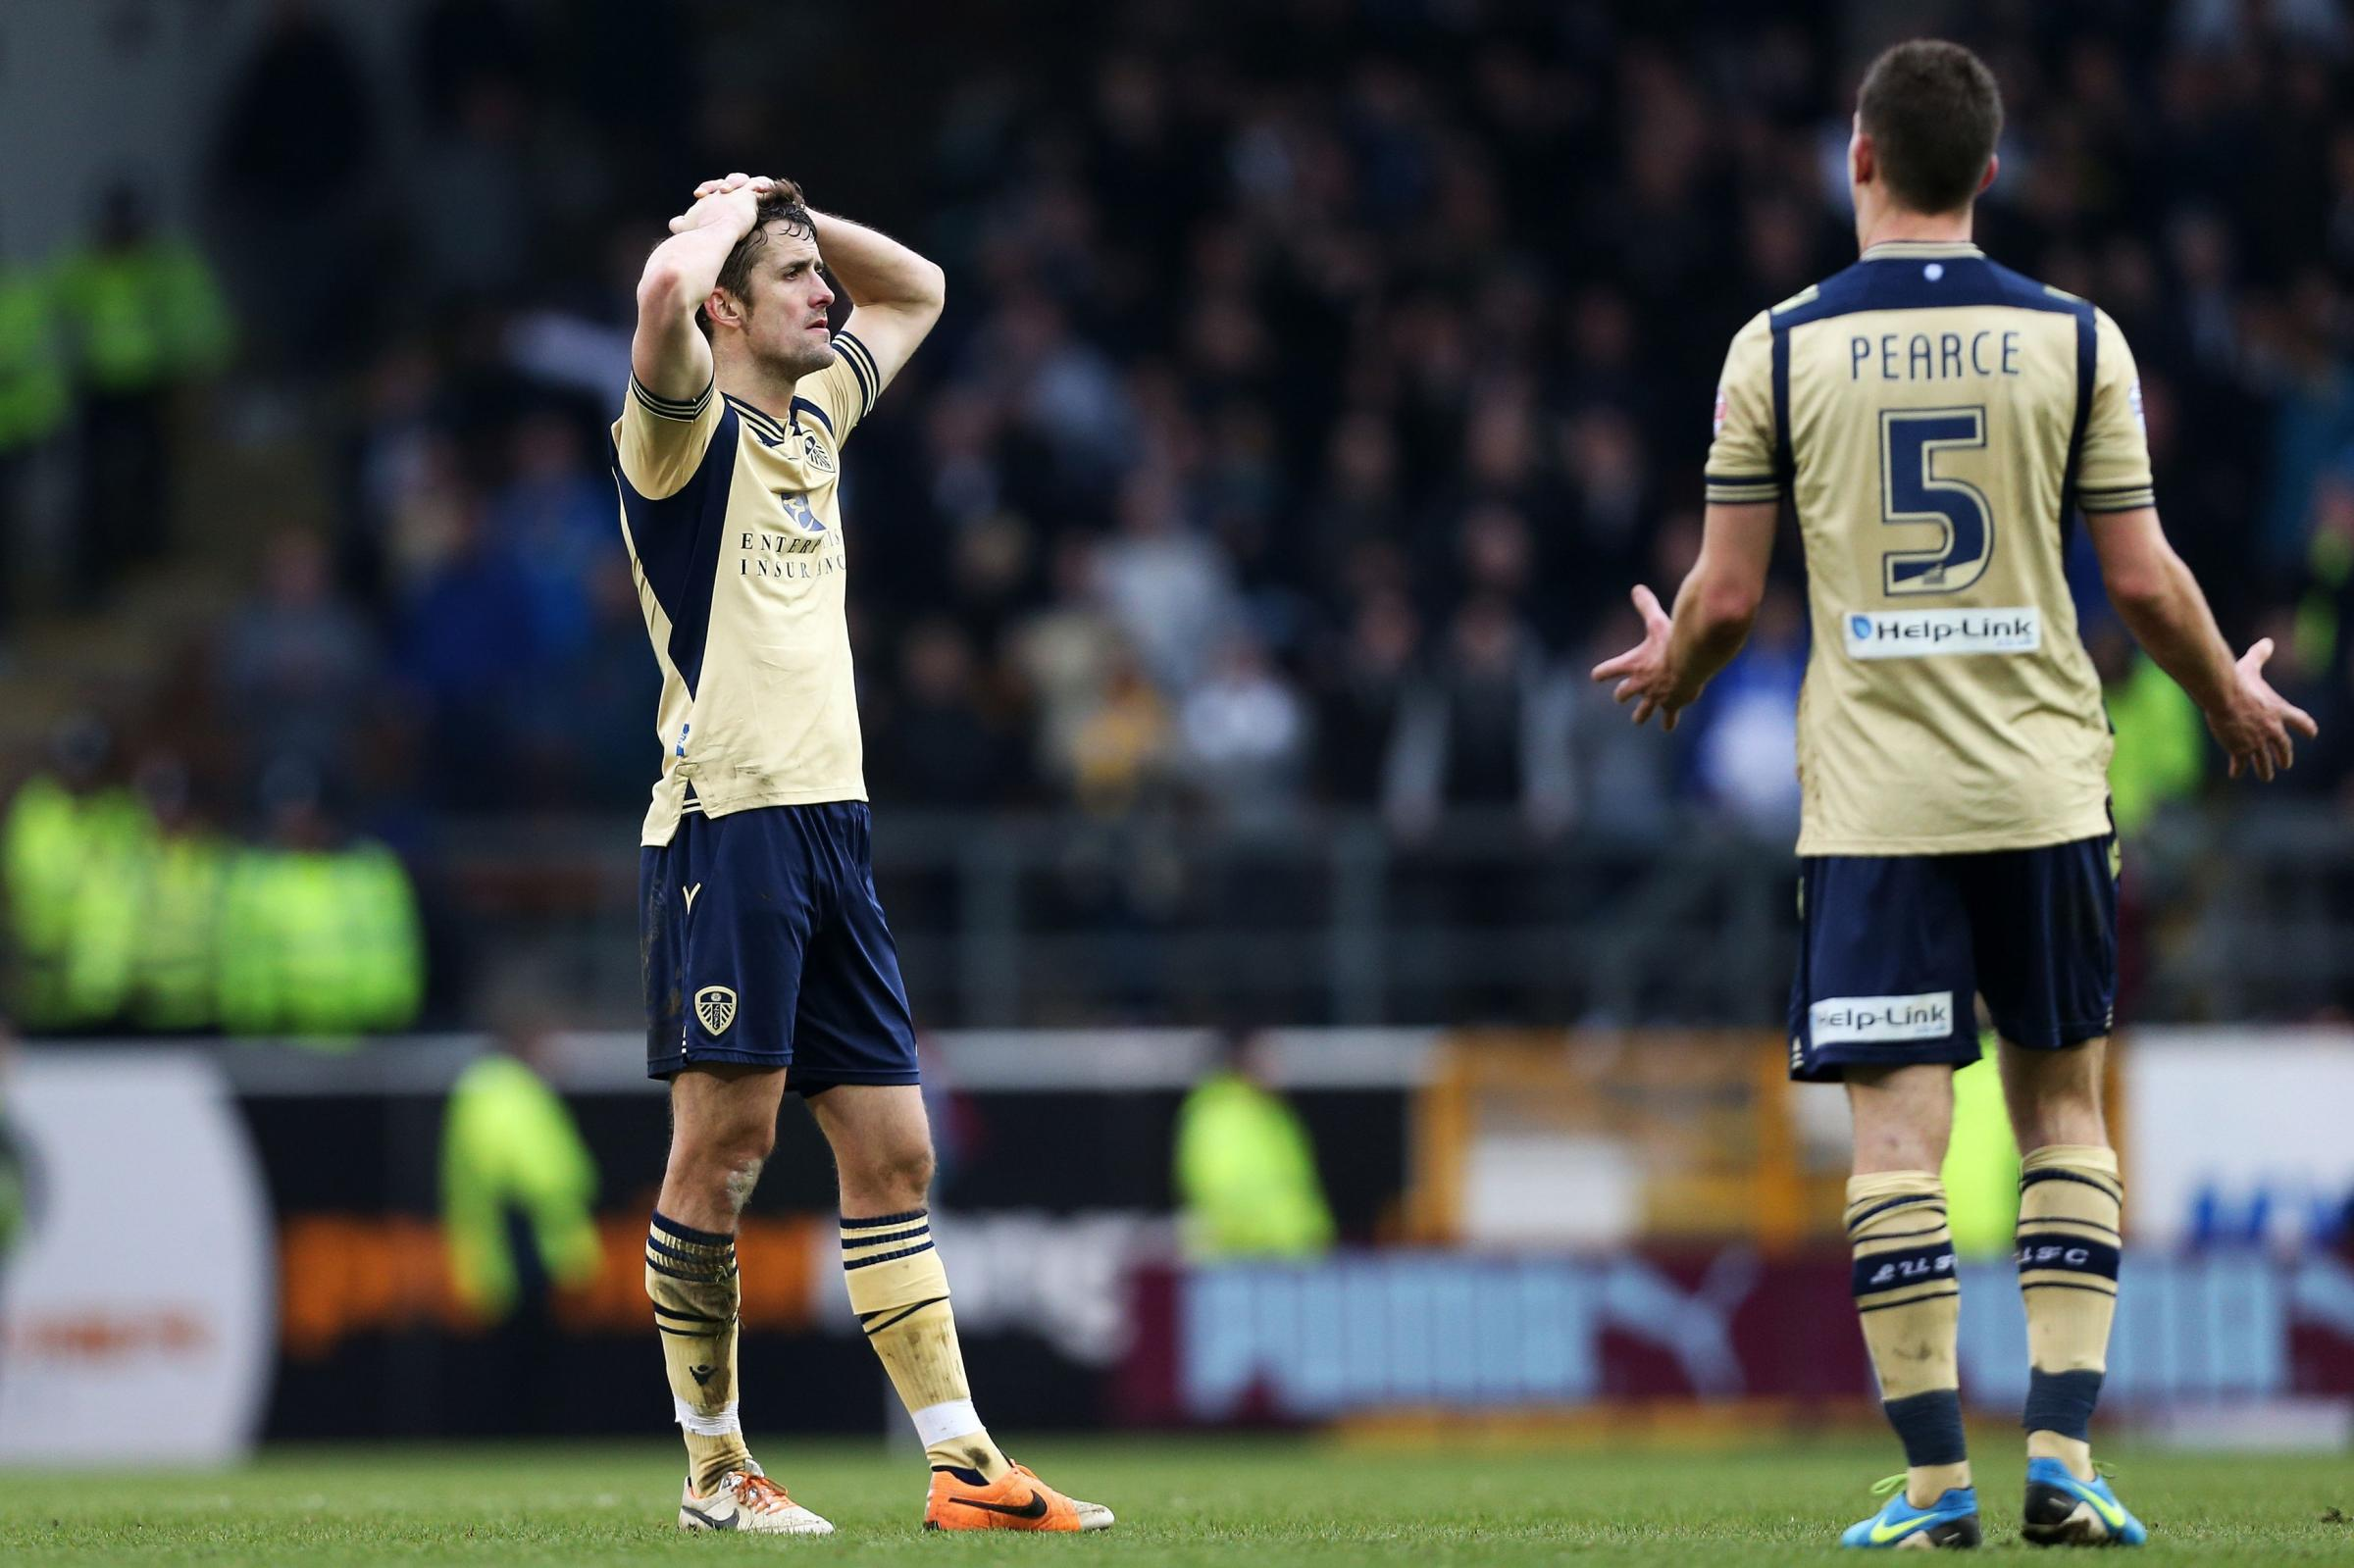 Leeds United's Luke Murphy and Jason Pearce react after losing the Sky Bet Championship  match at the Turf Moor, Burnley. PRESS ASSOCIATION Photo. Picture date: Saturday March 15, 2014. See PA story SOCCER Burnley. Photo credit should read: Lynne Came